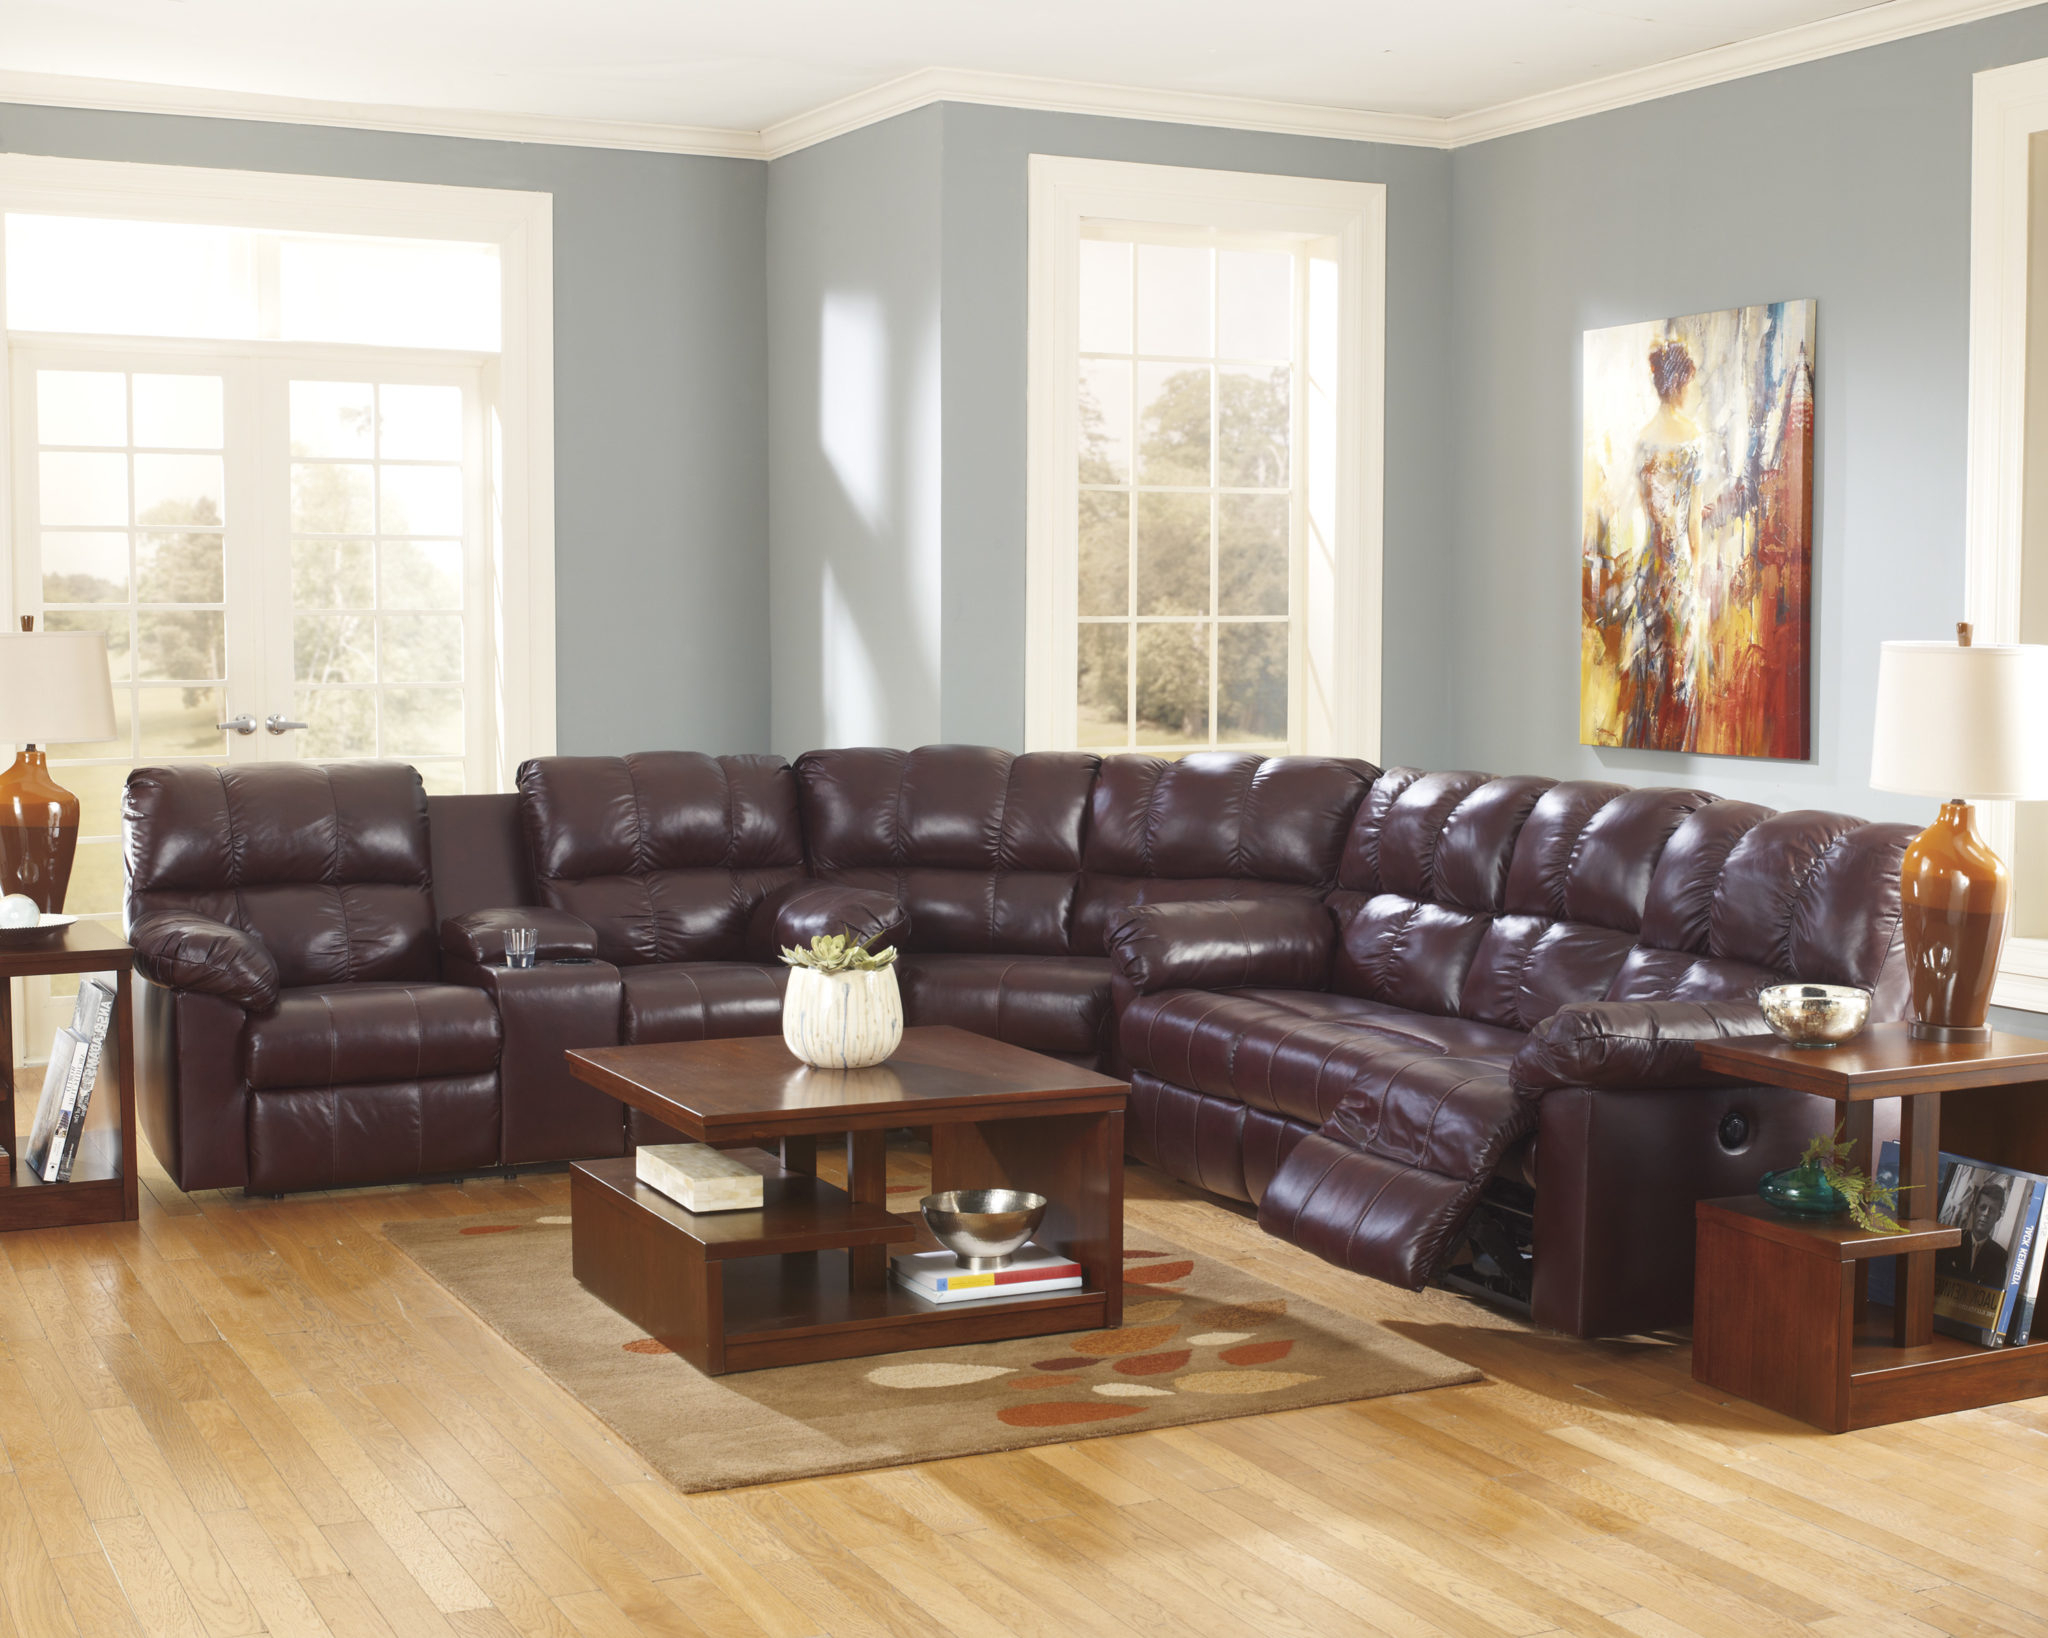 Beautiful Sectional Power Reclining Sofa – Sofas In Well Known Clyde Grey Leather 3 Piece Power Reclining Sectionals With Pwr Hdrst & Usb (View 14 of 20)